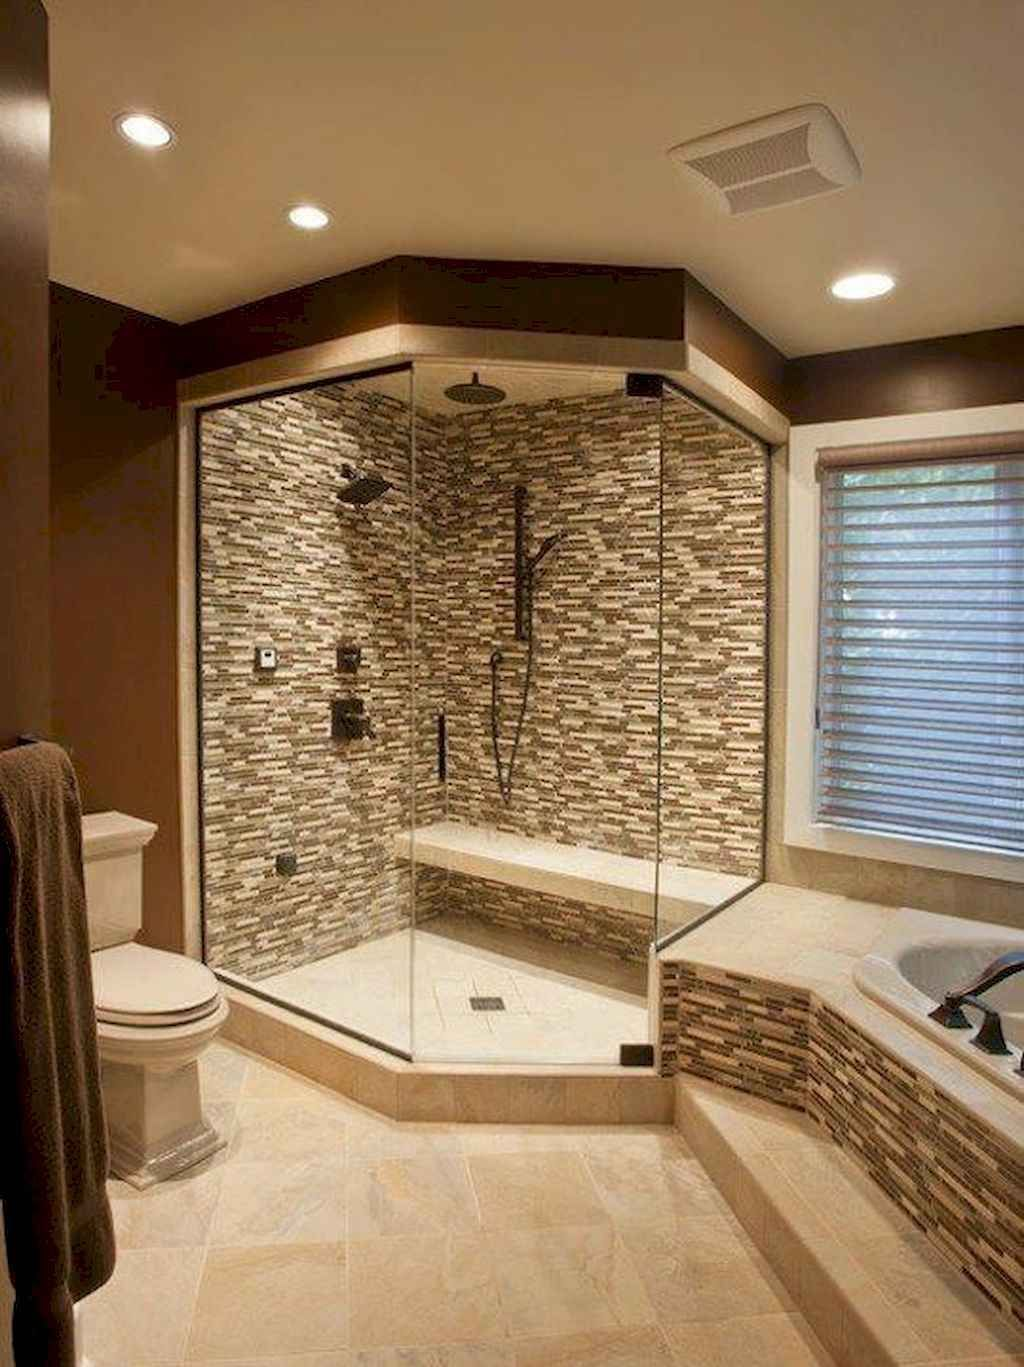 Design Megillah Bathroom Redesign For Under 200: 80 Stunning Tile Shower Designs Ideas For Bathroom Remodel